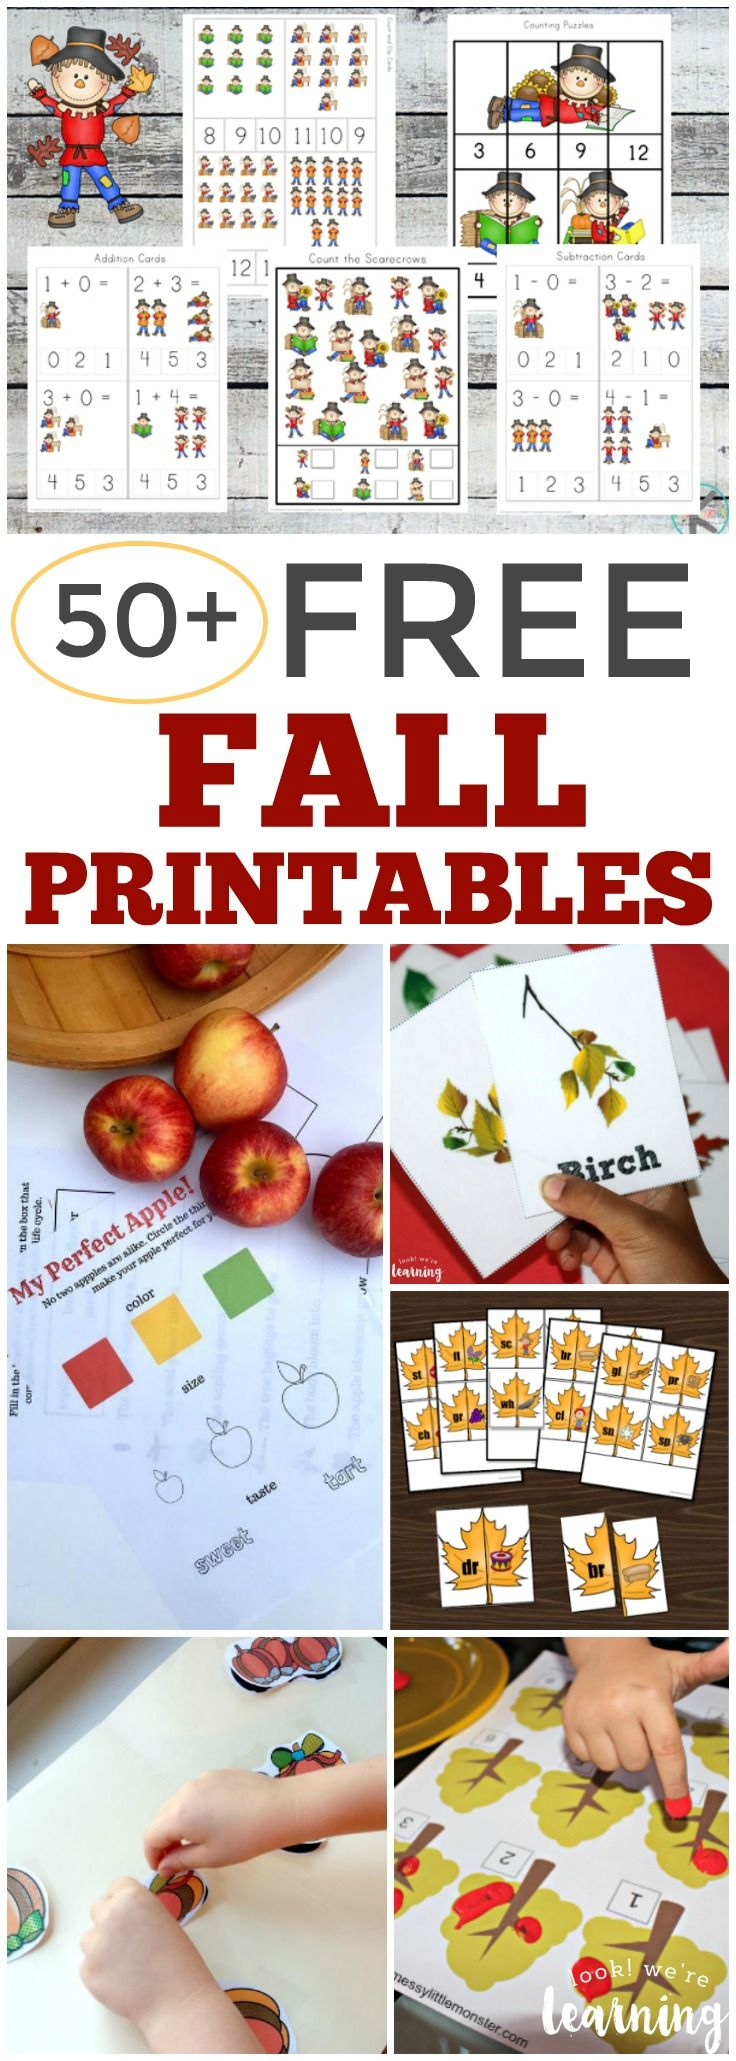 Over 50 Free Fall Printables for Kids! #50freeprintables